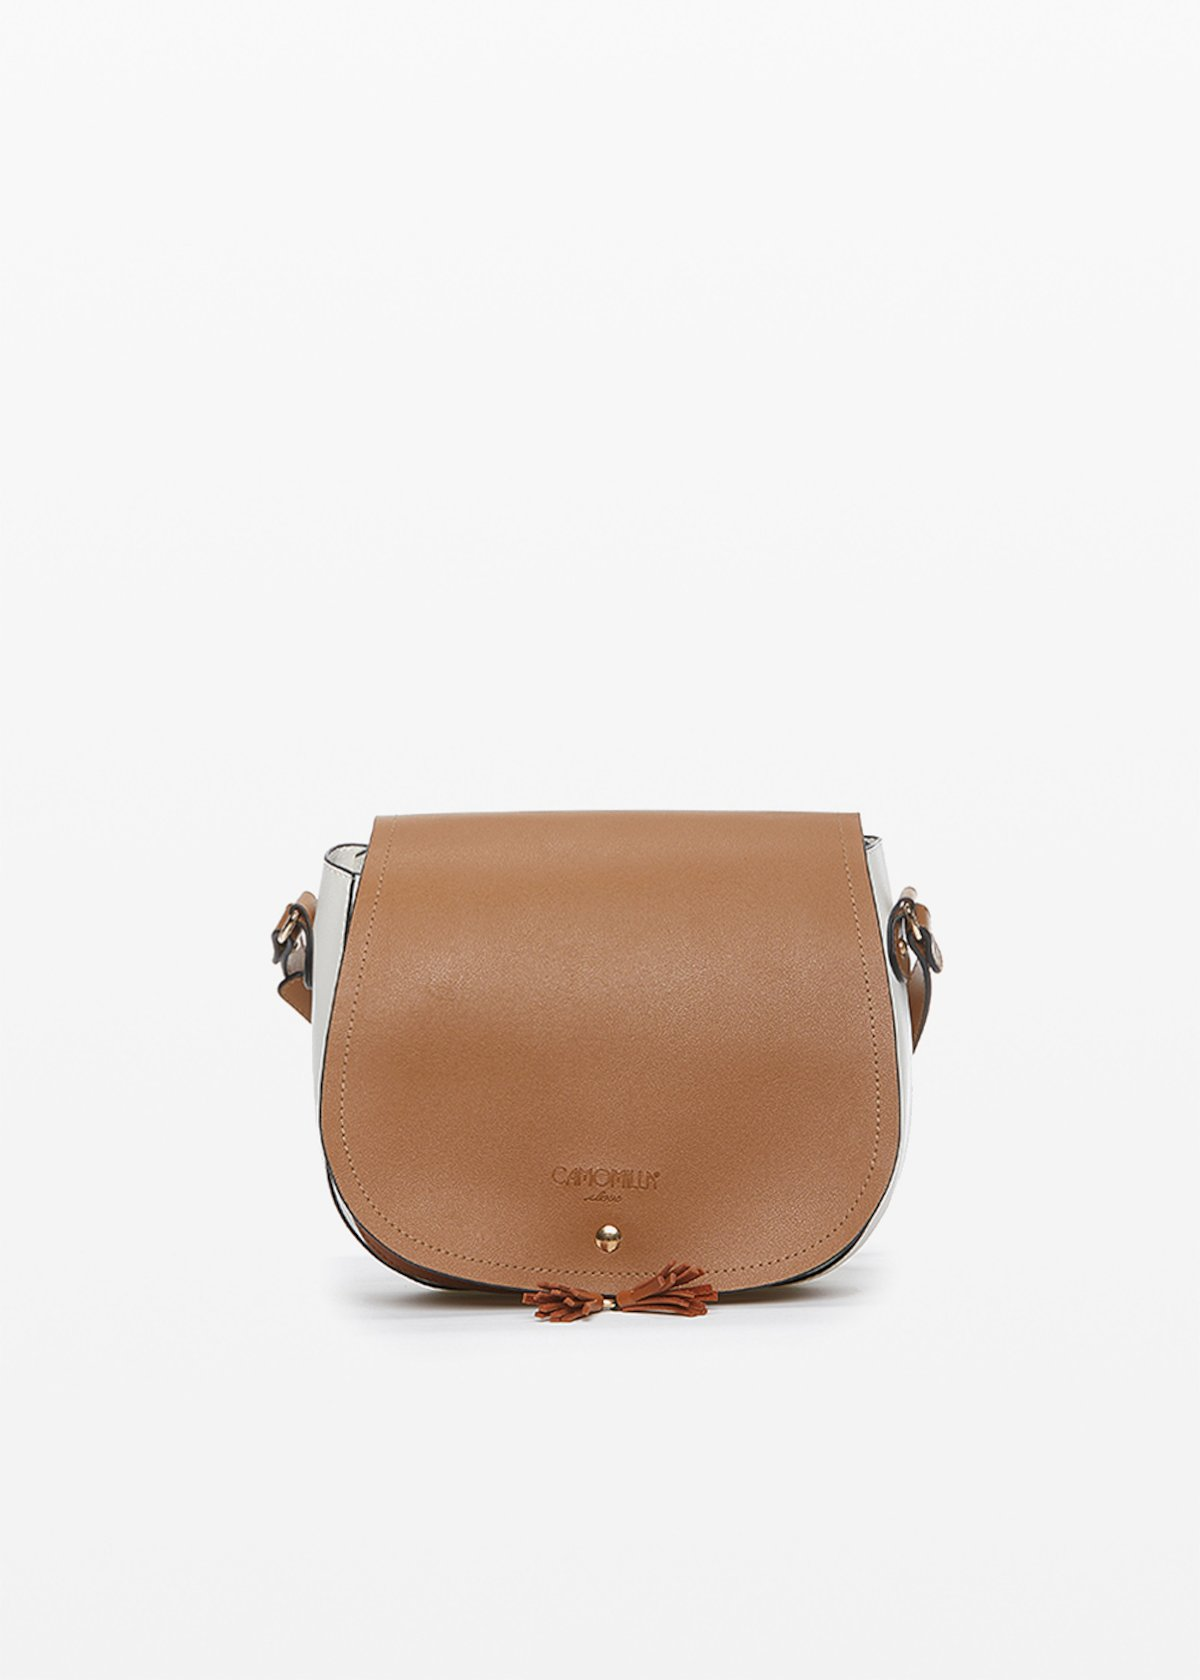 Boppy cross-body bag in bicolor eco-leather with contrasting leaf and micro-nappa decoration - Lion / White - Woman - Category image